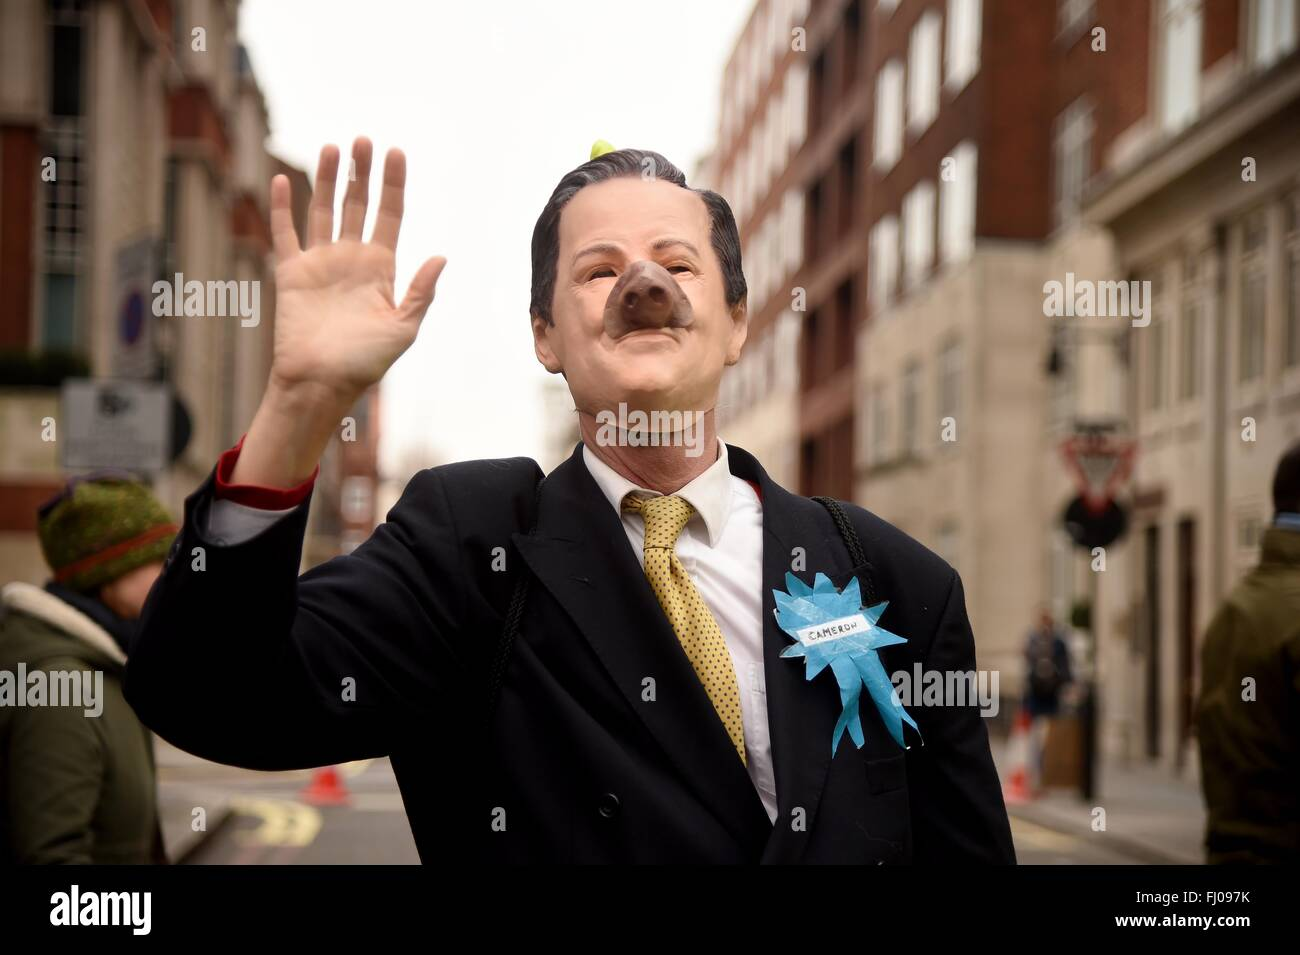 CND Anti Trident Protest, London, UK, protester dressed as David Cameron as a pig - Stock Image